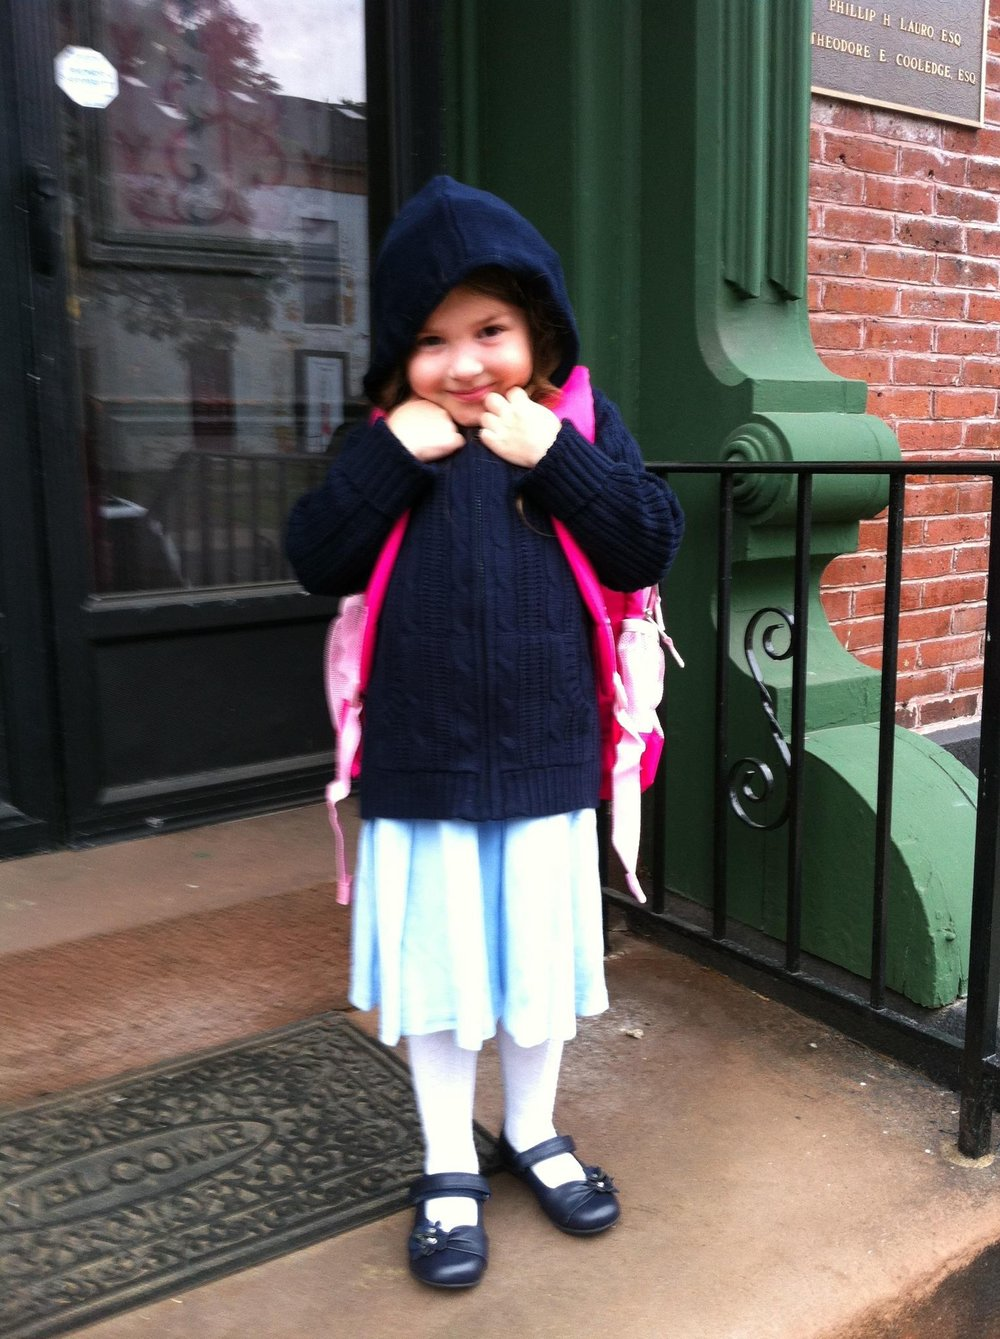 The author's daughter, LuLu, on her first day on school